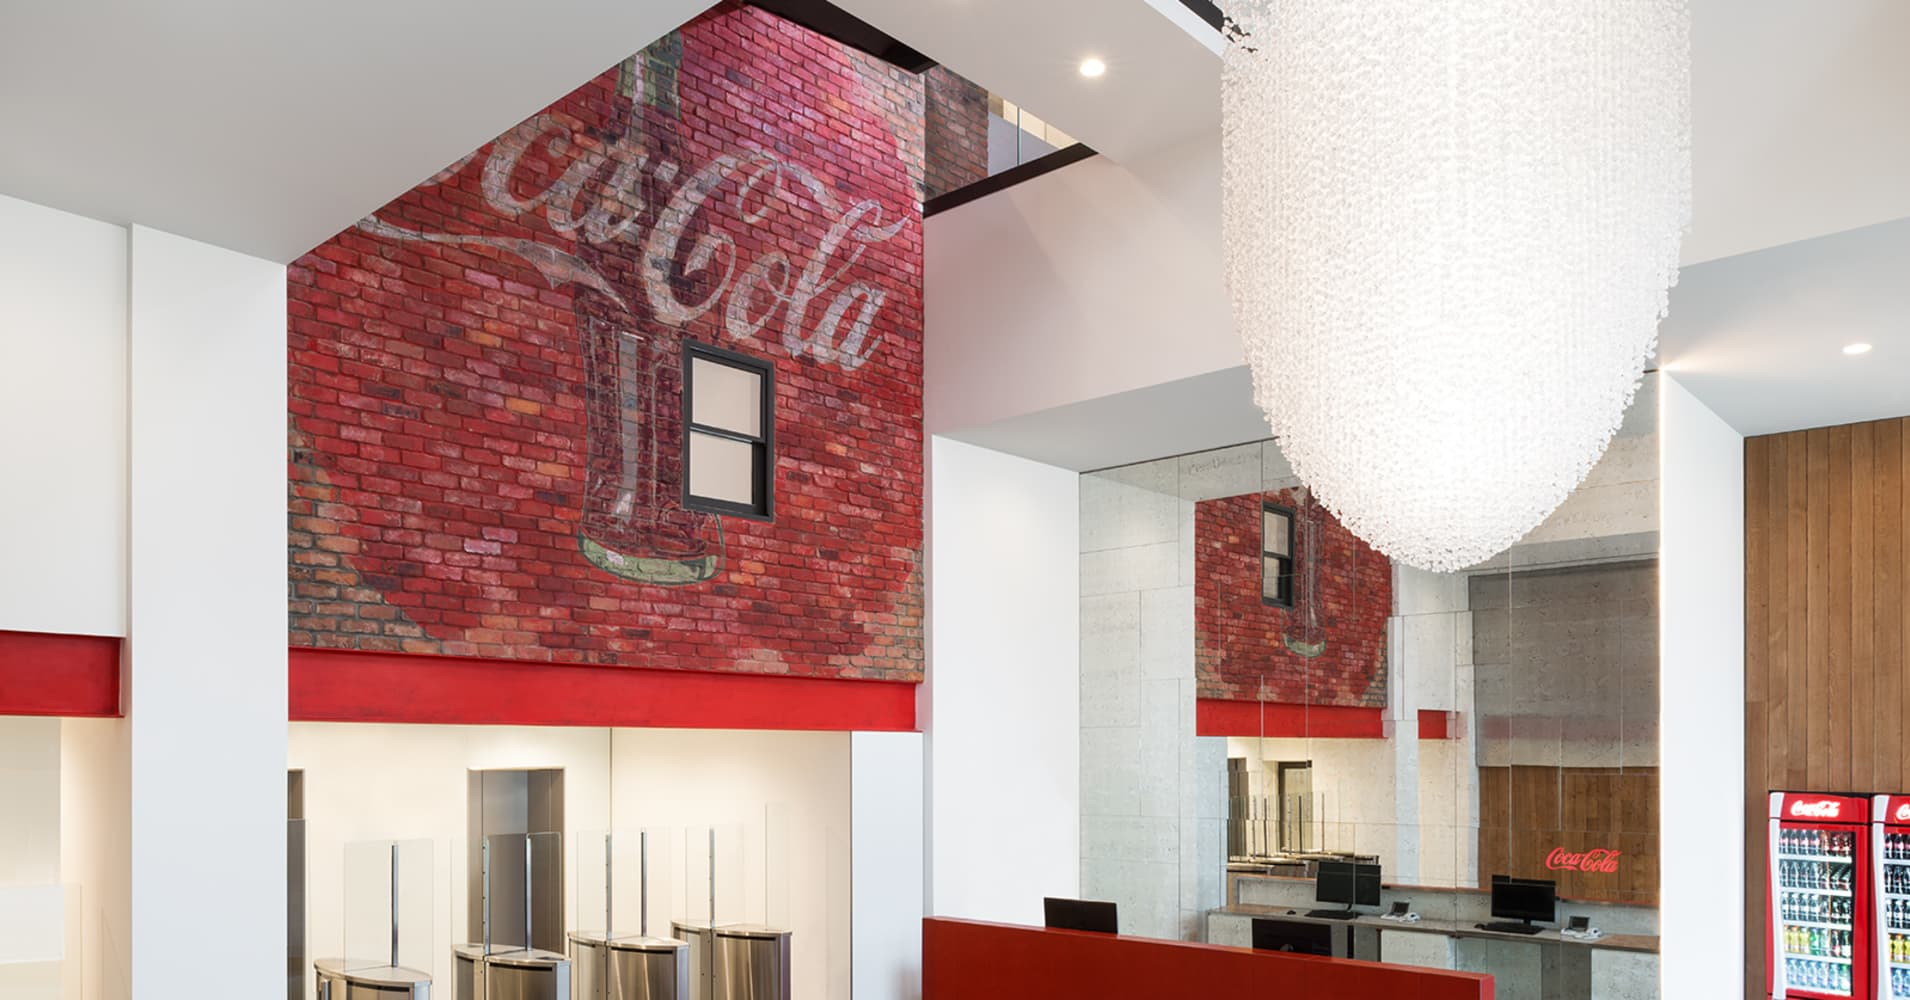 Welcome to Coca-Cola's reception at its London offices. Fun fact, the light sculpture by Stuart Haygarth, features over 80,000 acrylic ice chunks and are suspended on ultra fine wires and illuminated by LEDs.